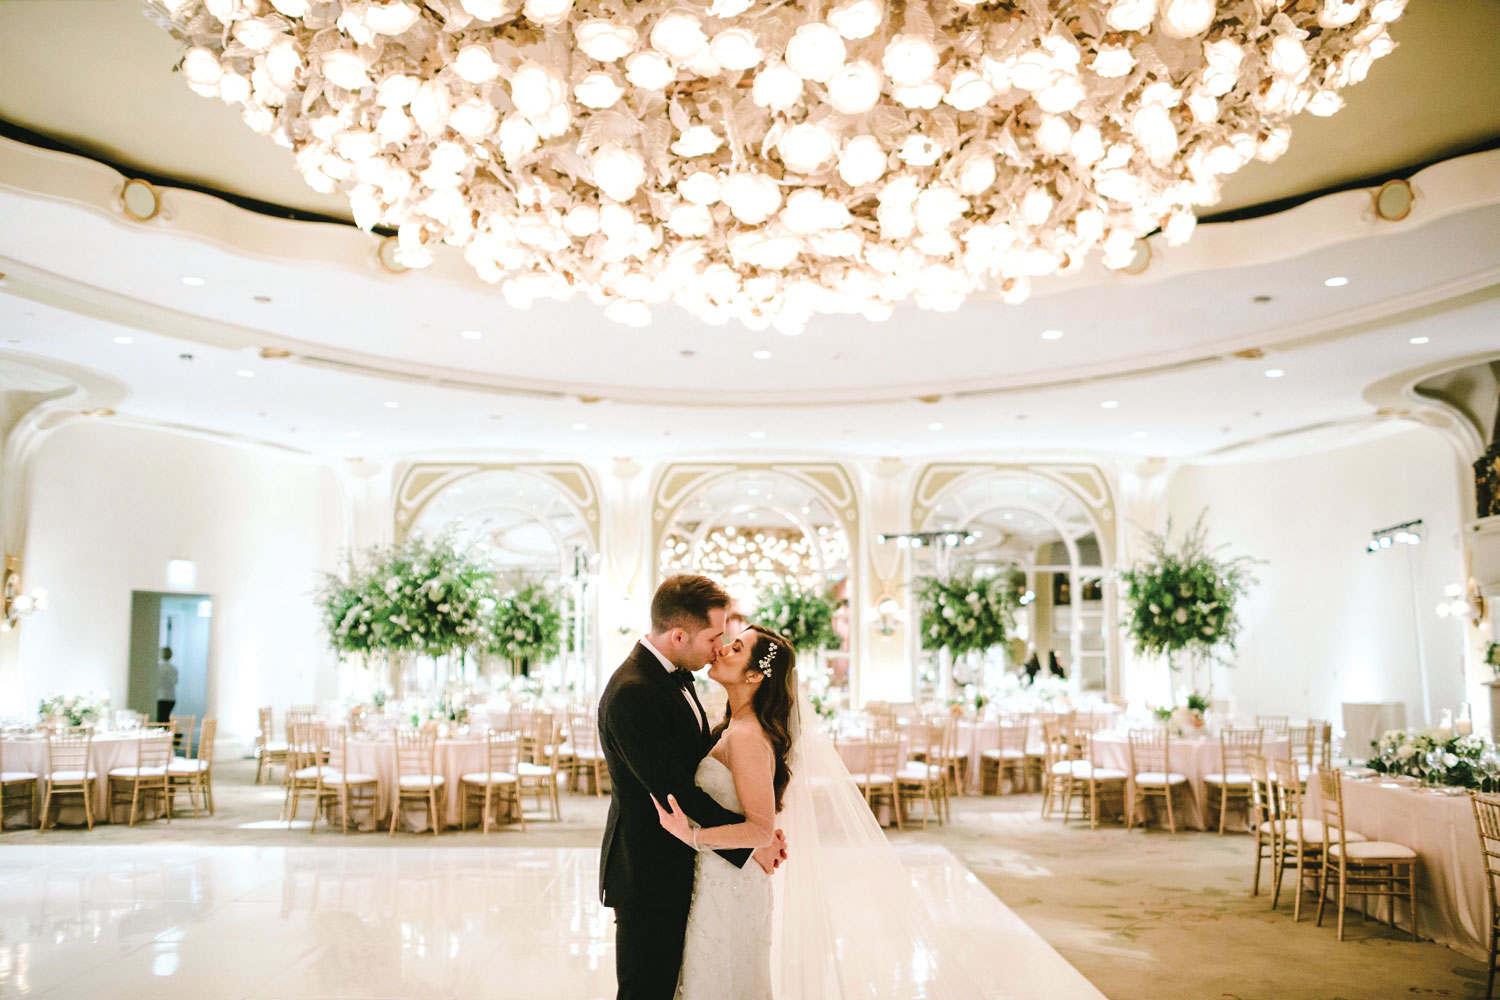 bride and groom kiss in empty ballroom wedding reception venue tessa lyn events planning tips